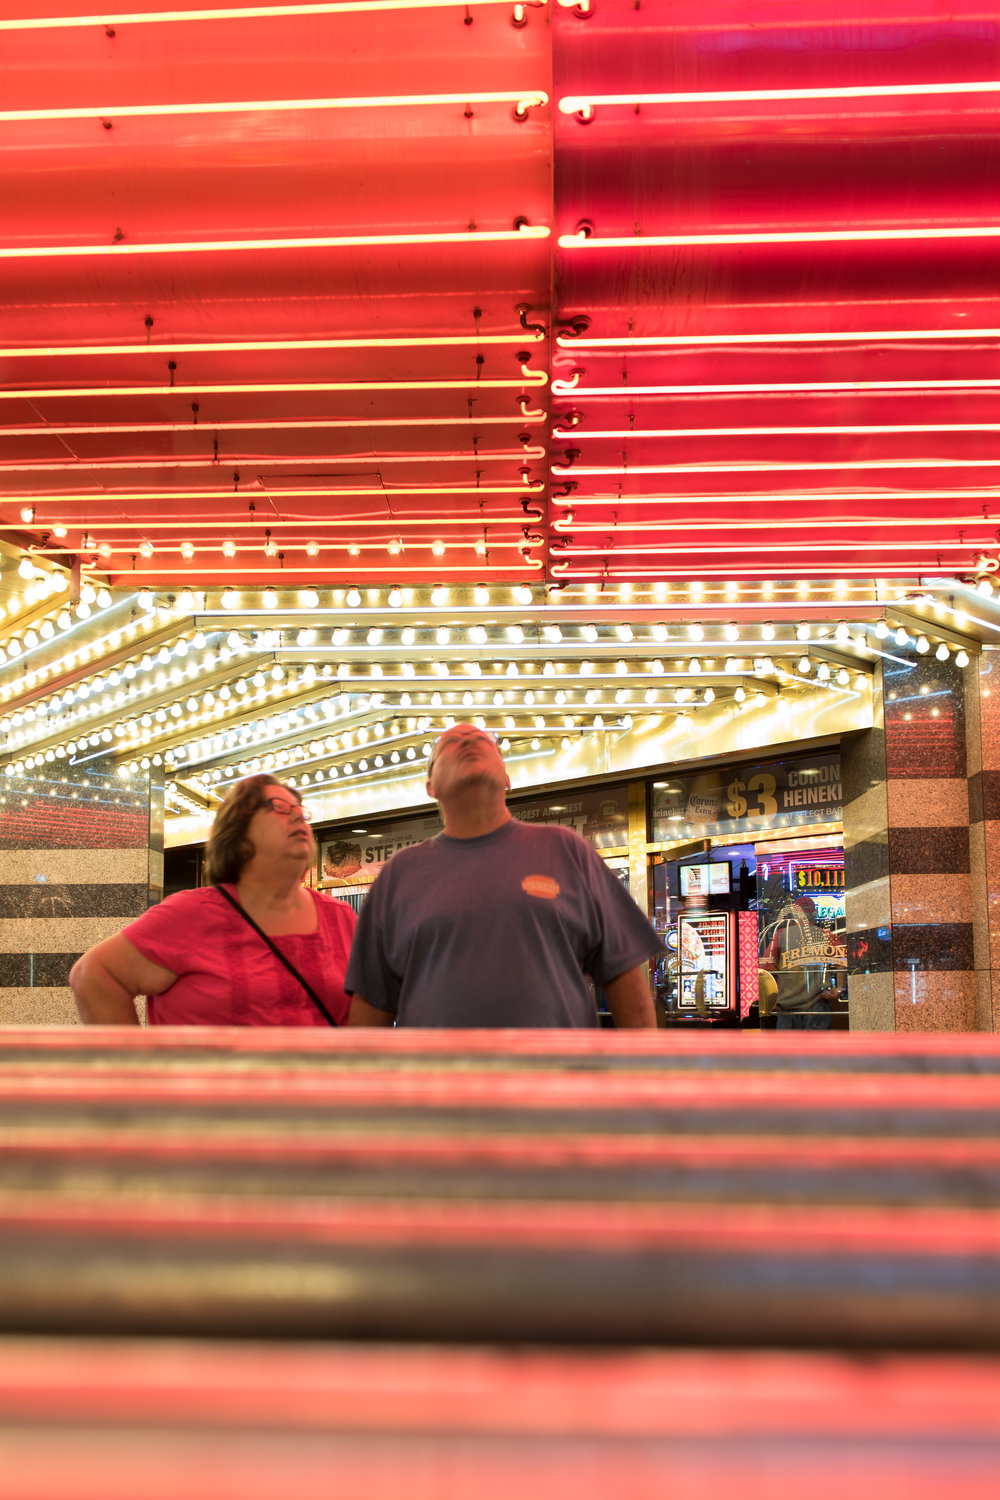 Fremont hotel-casino in downtown Las Vegas, May 29, 2018.